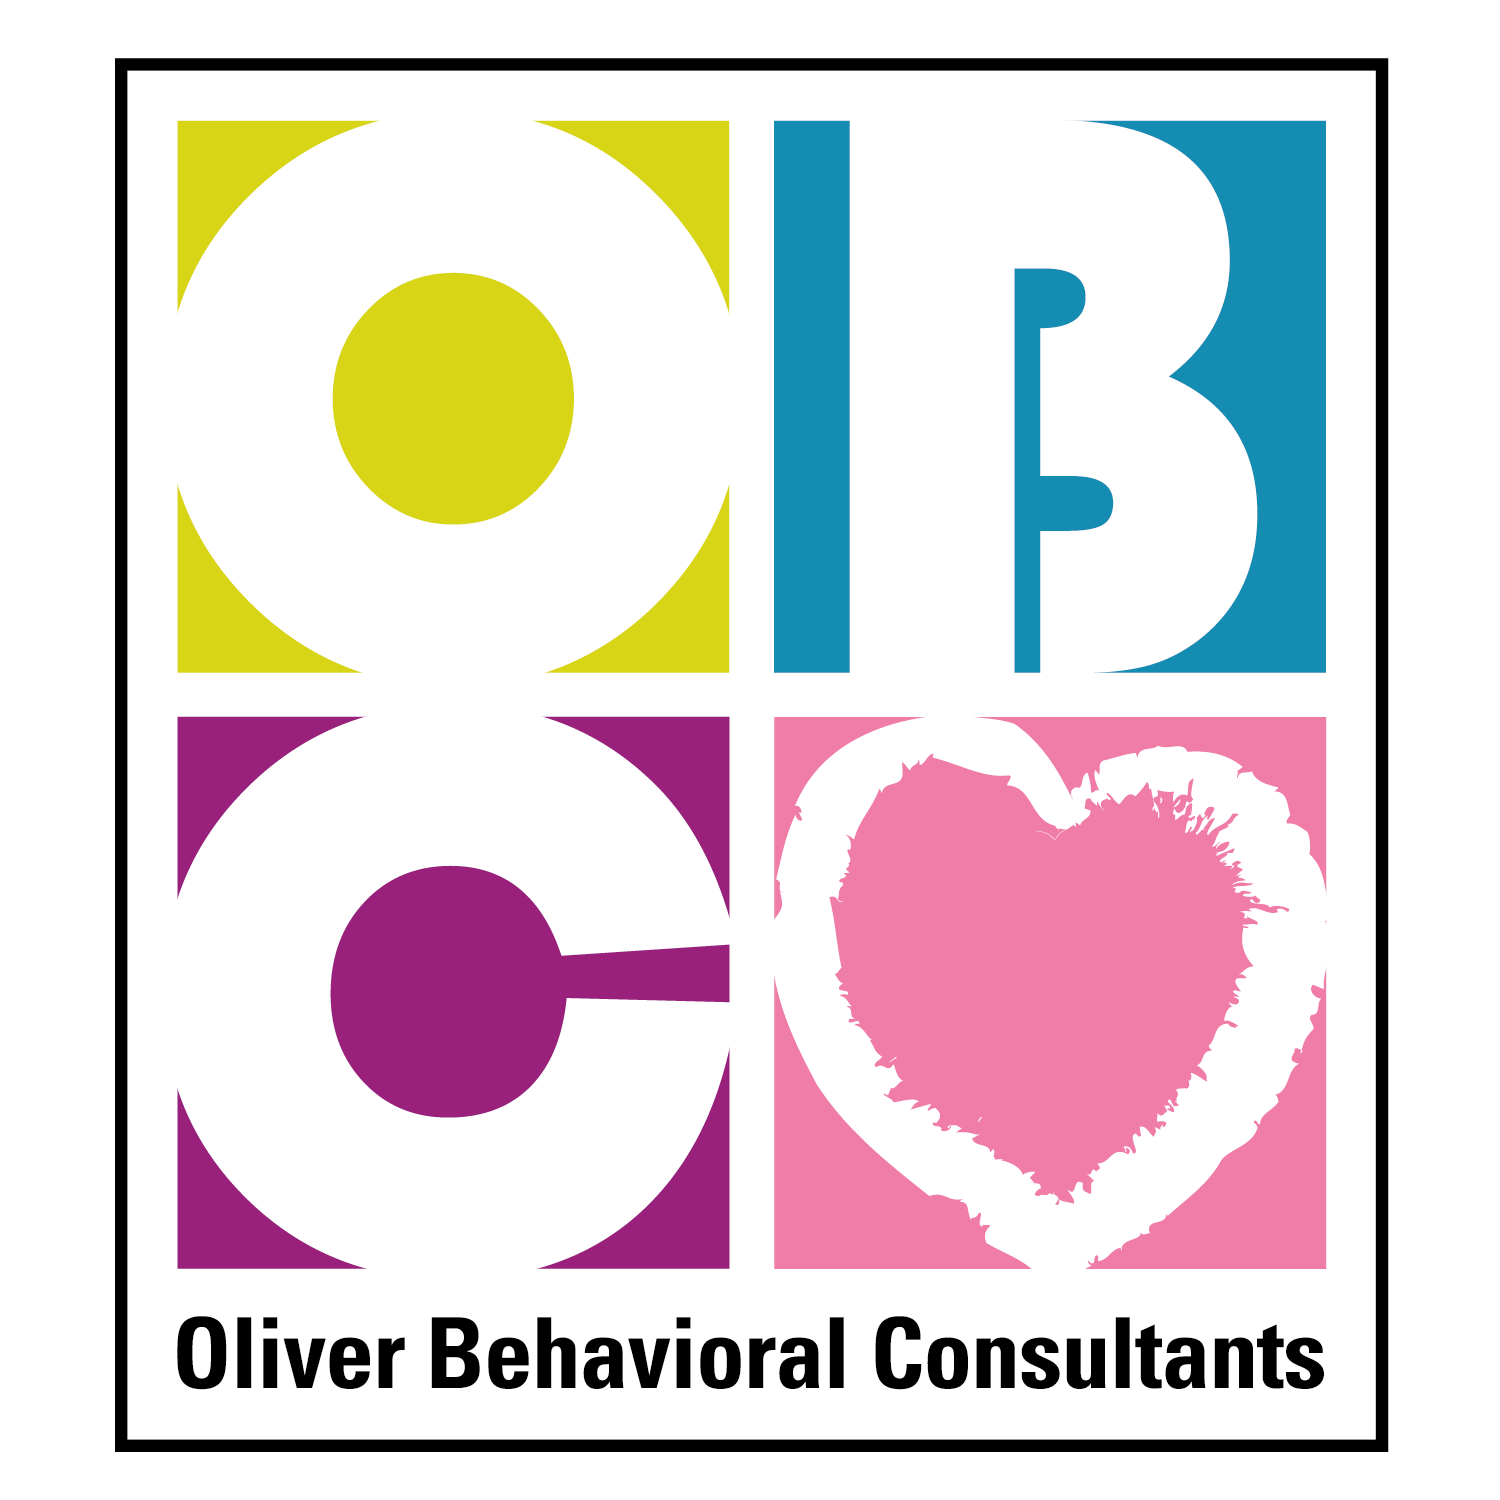 Oliver Behavioral Consultants